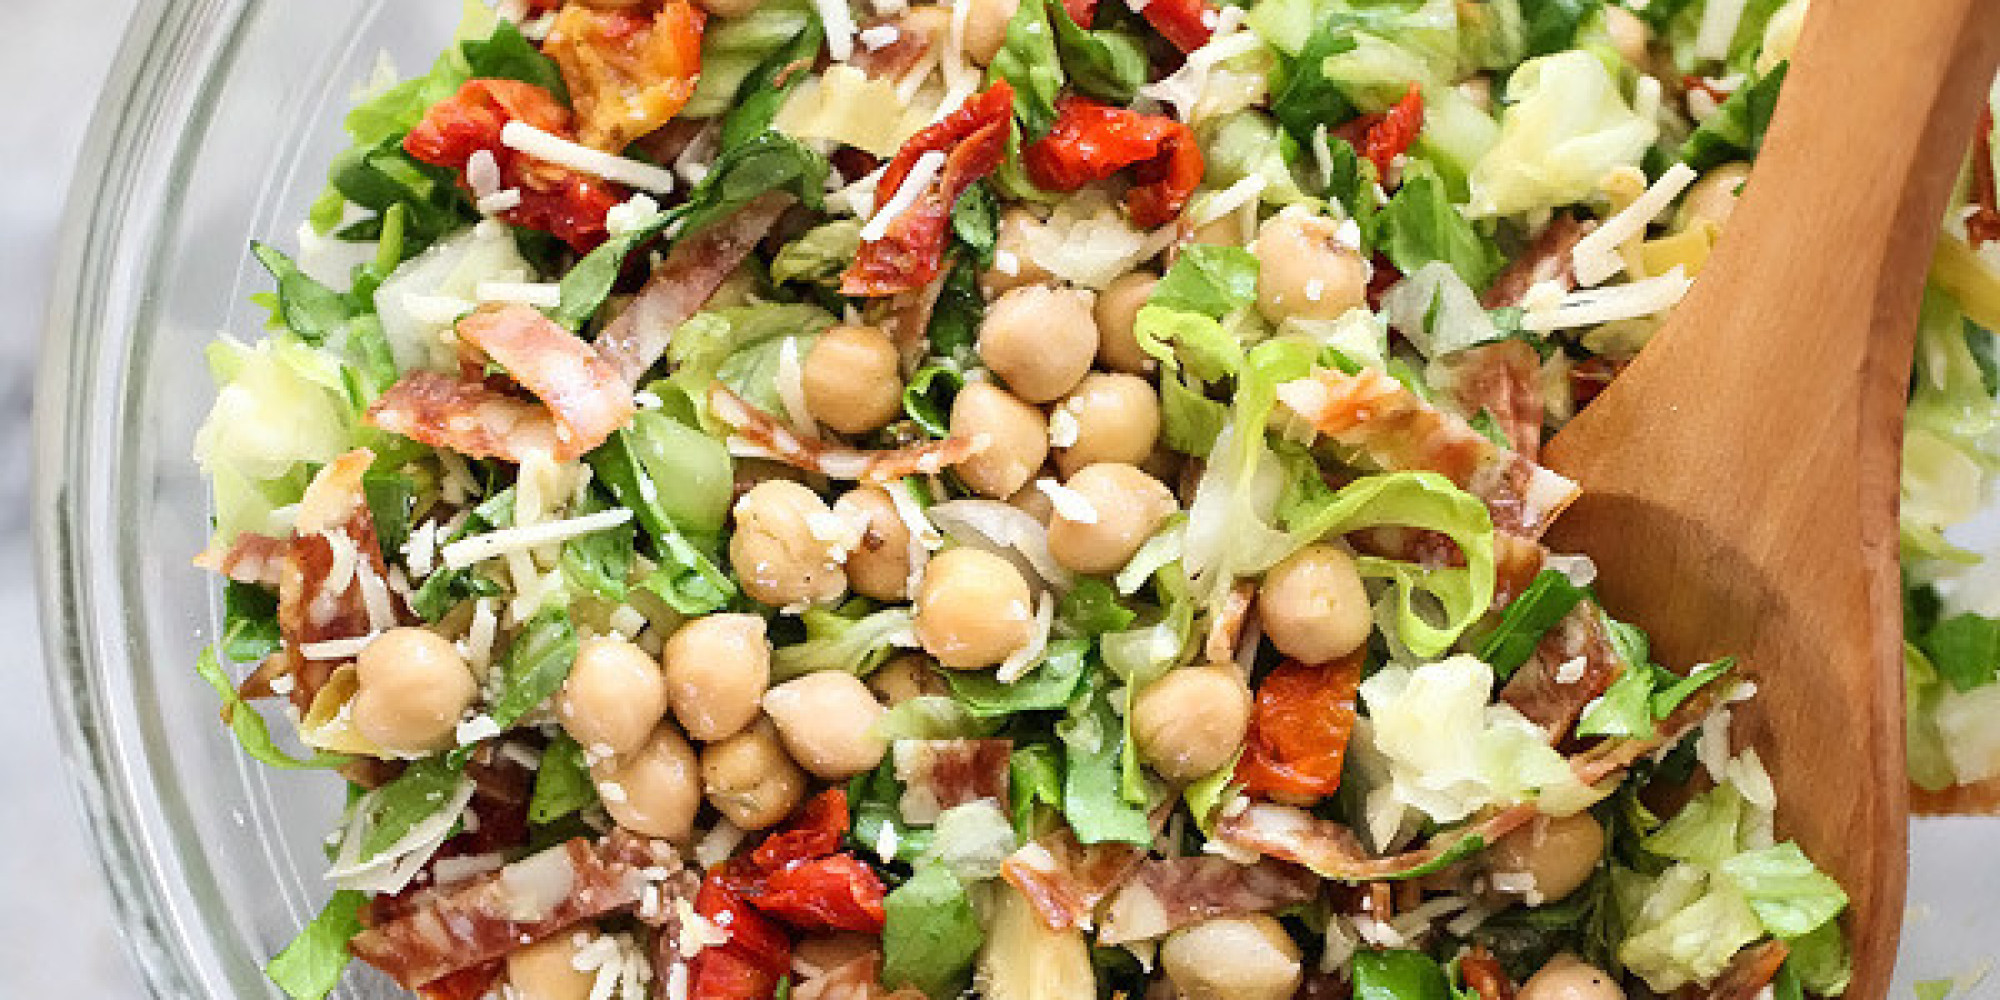 Salad recipes that make eating healthy a breeze huffpost for Salas ideas